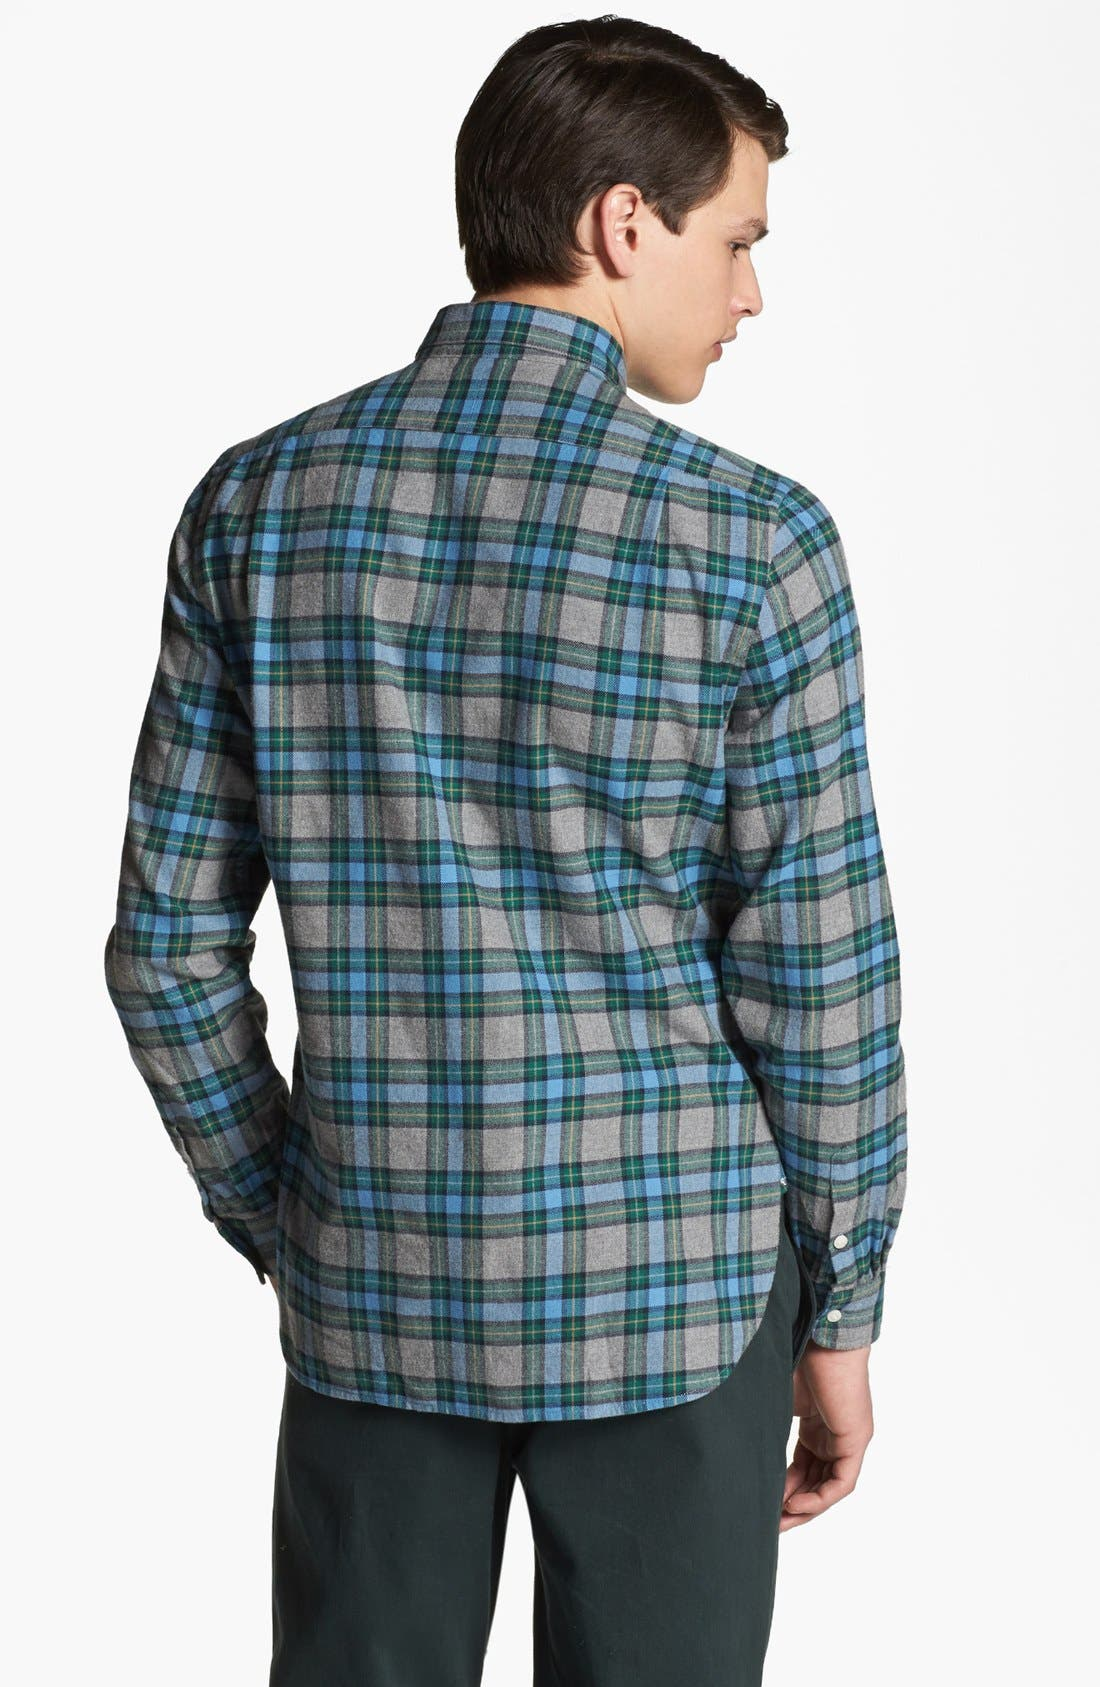 SHIPLEY & HALMOS, 'Marine' Plaid Woven Shirt, Alternate thumbnail 2, color, 020